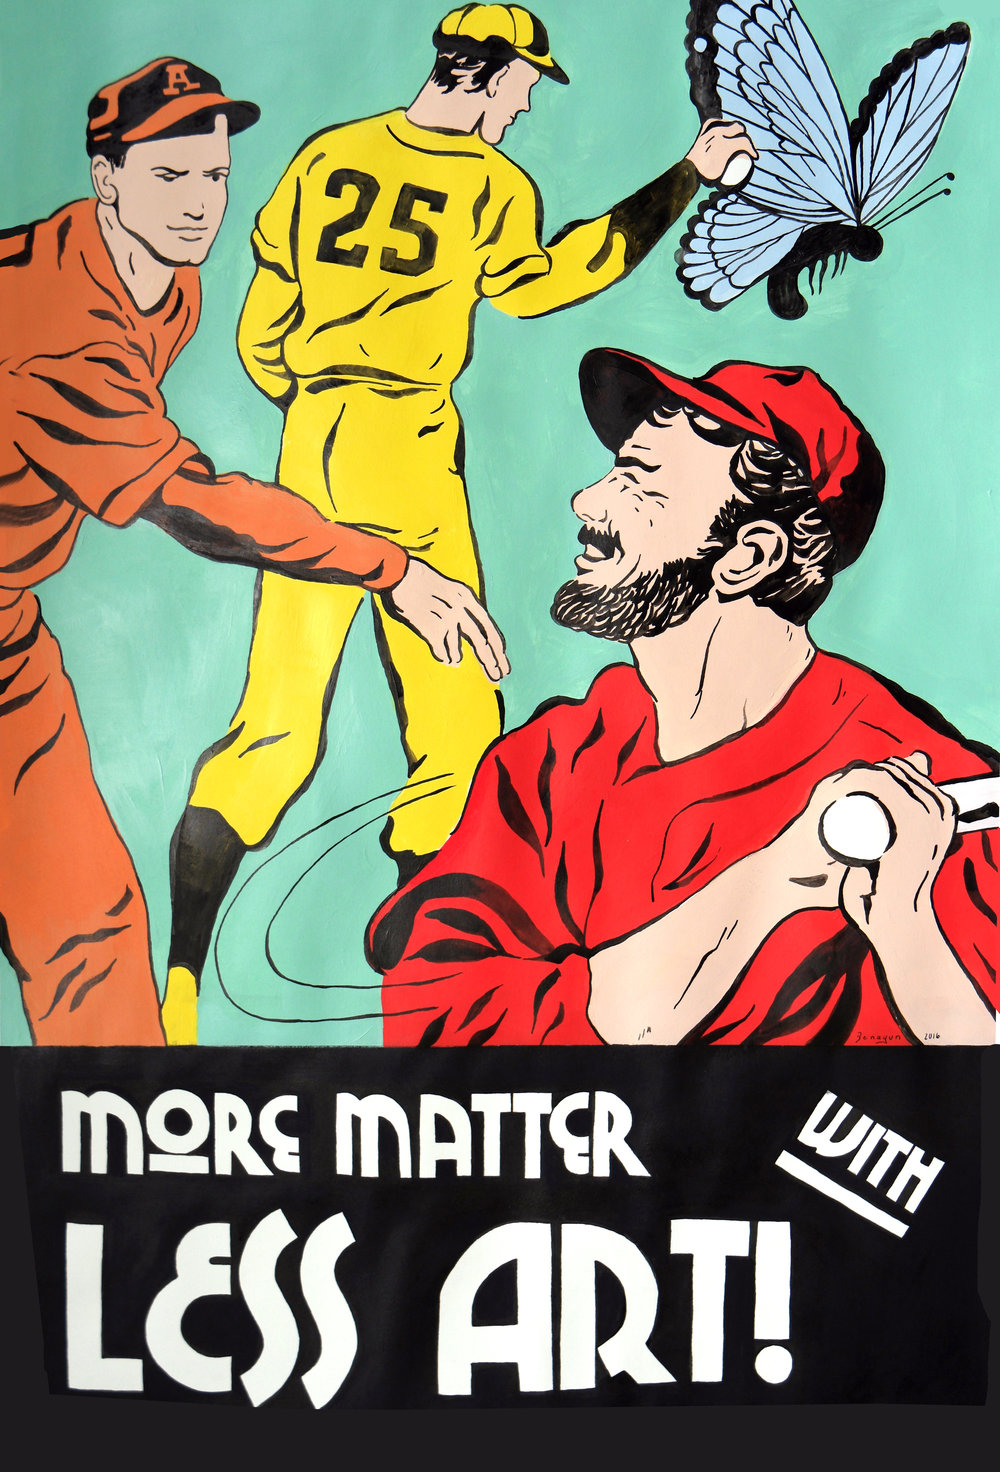 "More Matter, Less Art! , gouache, acrylic and ink on paper, 34"" x 25 1/4"" framed, $1,000"